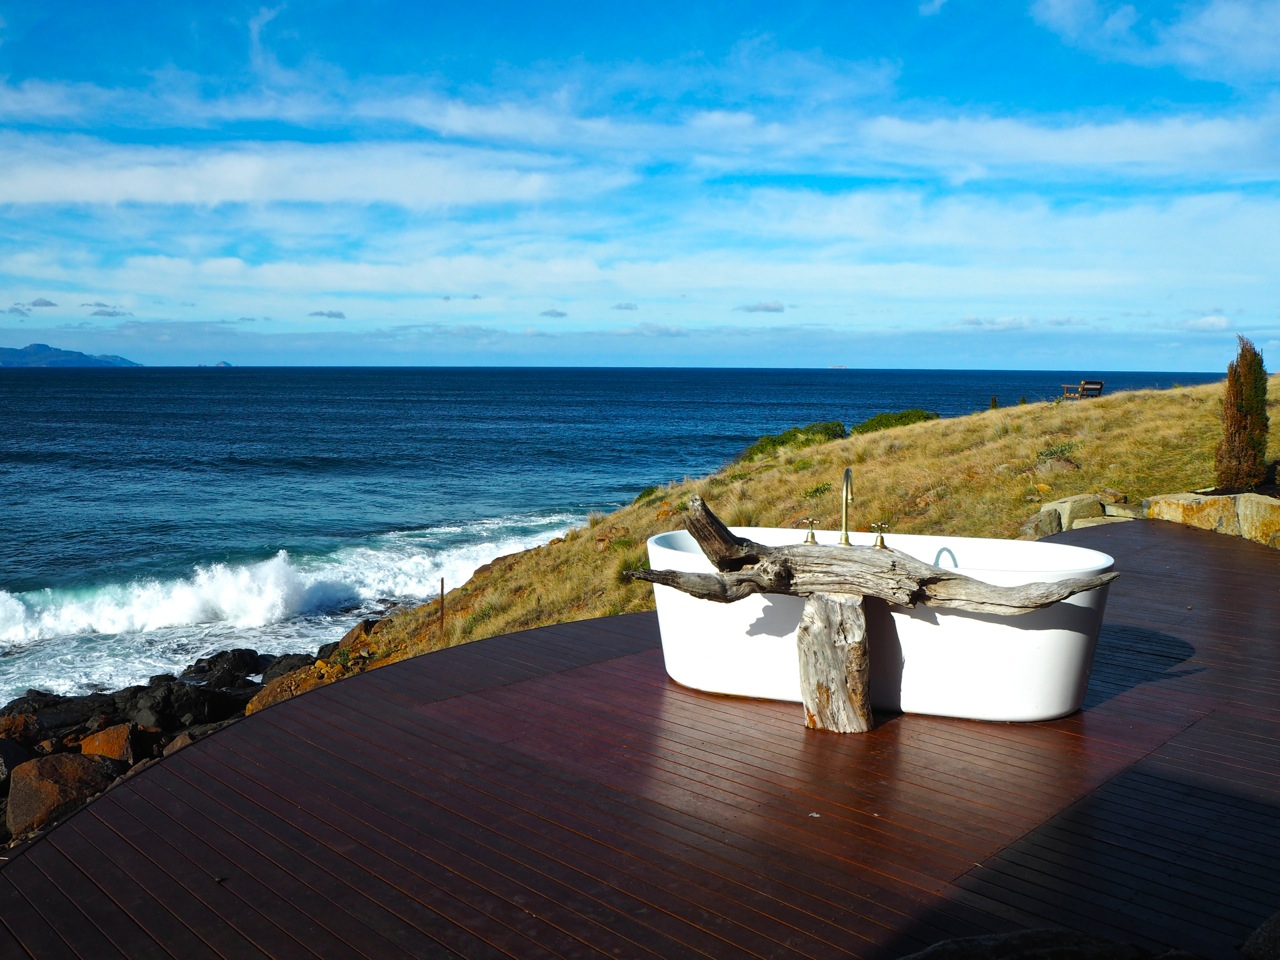 The World\'s Most Scenic Bathtub: Checking in to Thalia Haven on ...